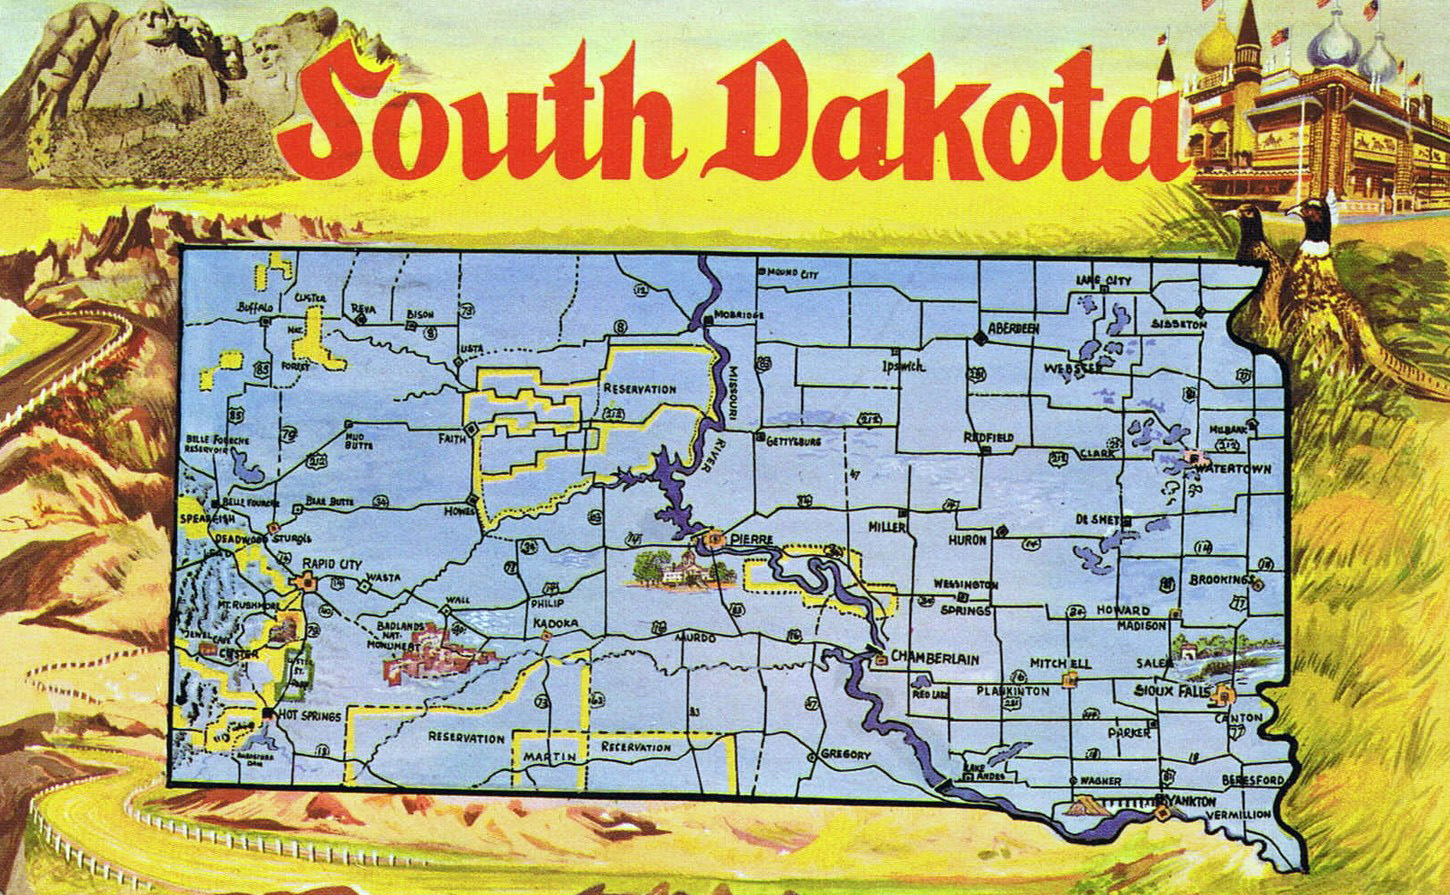 Large tourist illustrated map of South Dakota state | South Dakota ...